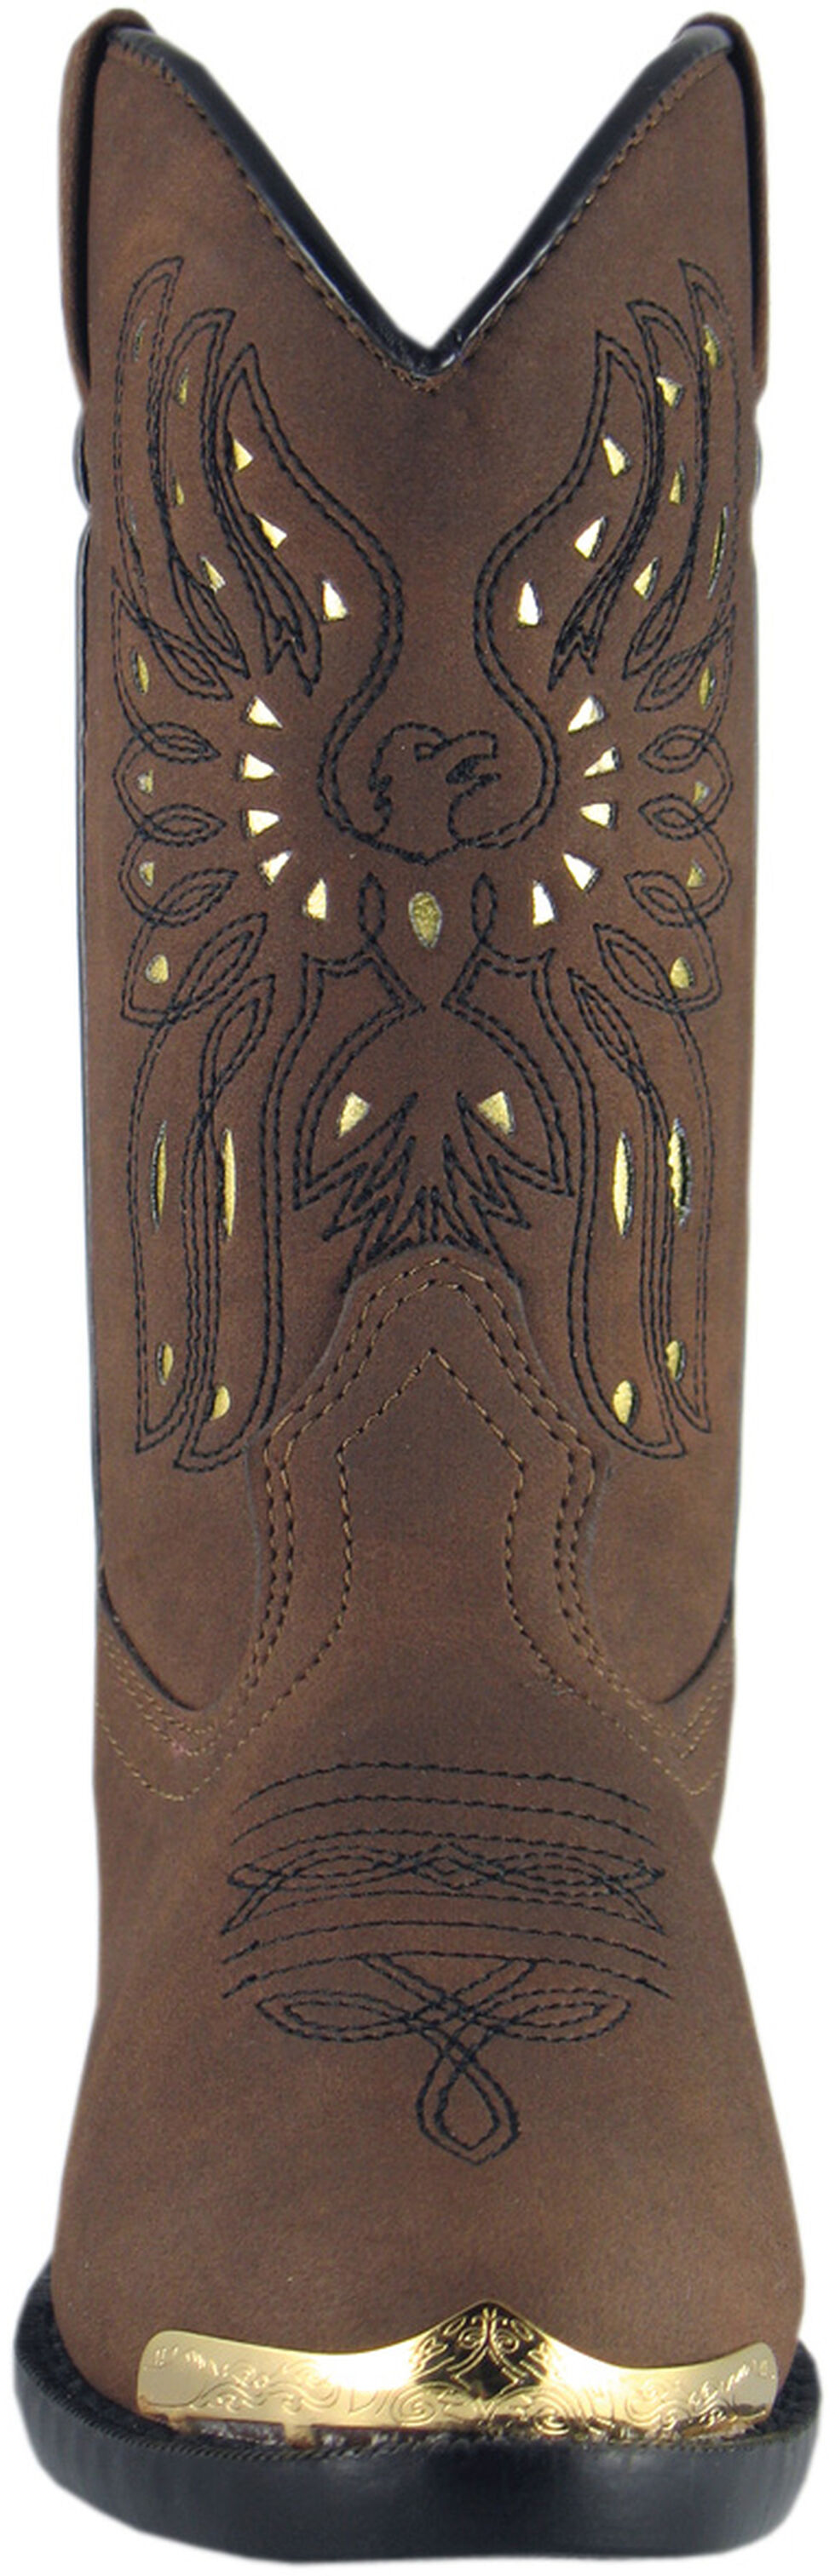 Smoky Mountain Youth Boys' Phoenix Western Boots - Round Toe, Brown, hi-res